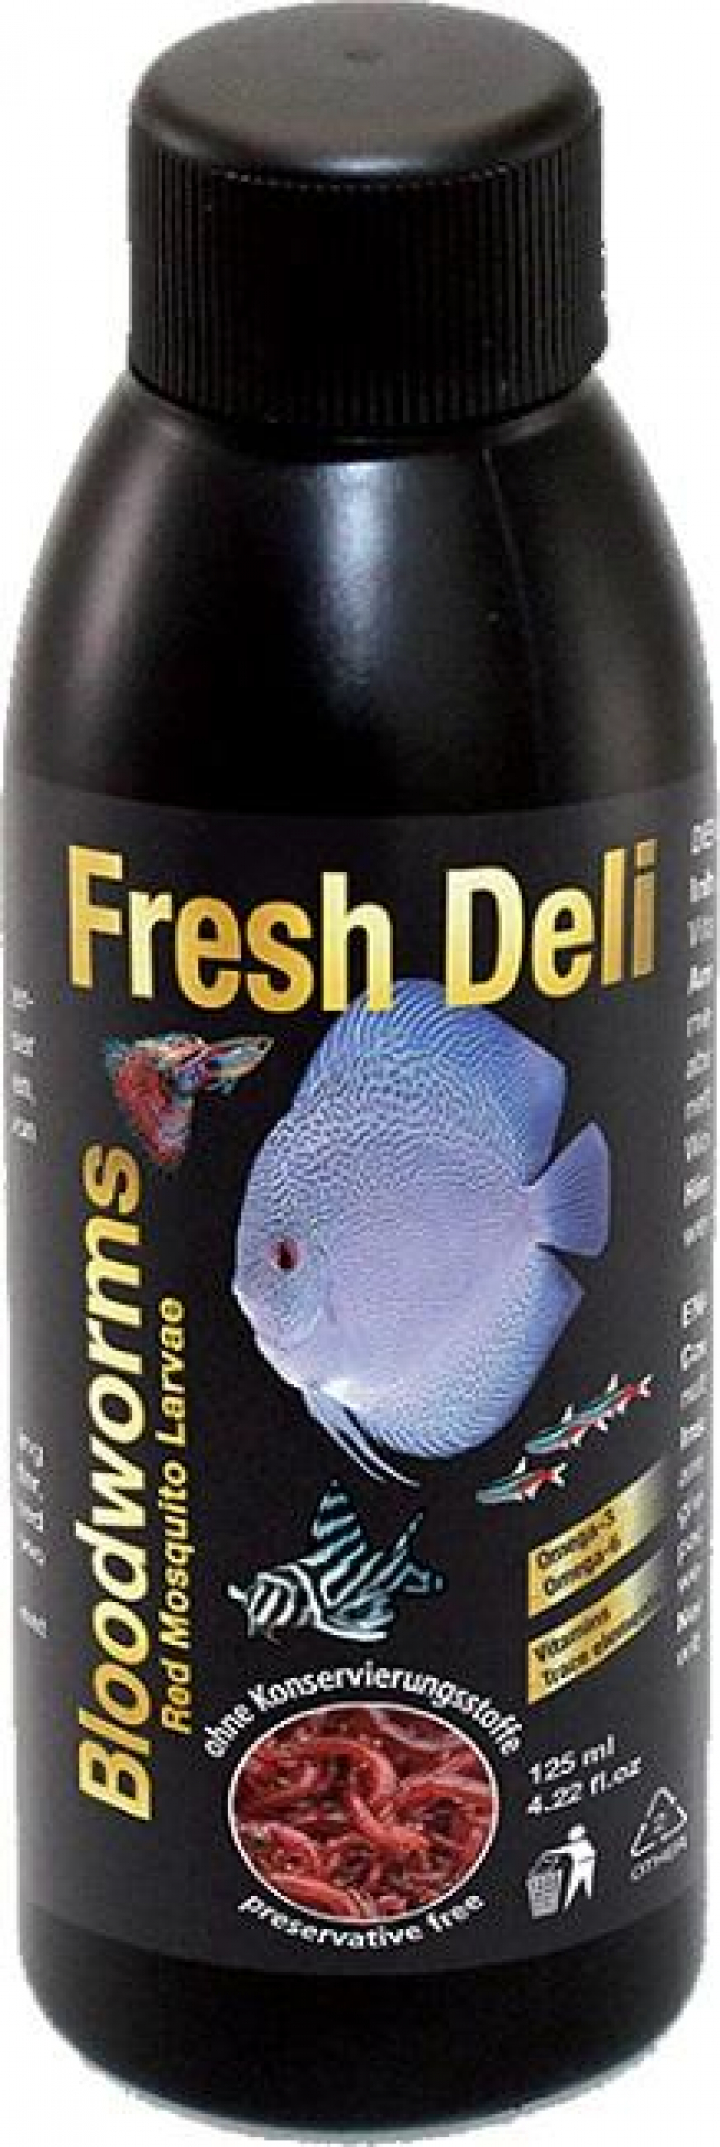 Discusfood Fresh Deli, Bloodworms in nutrient solution 125ml